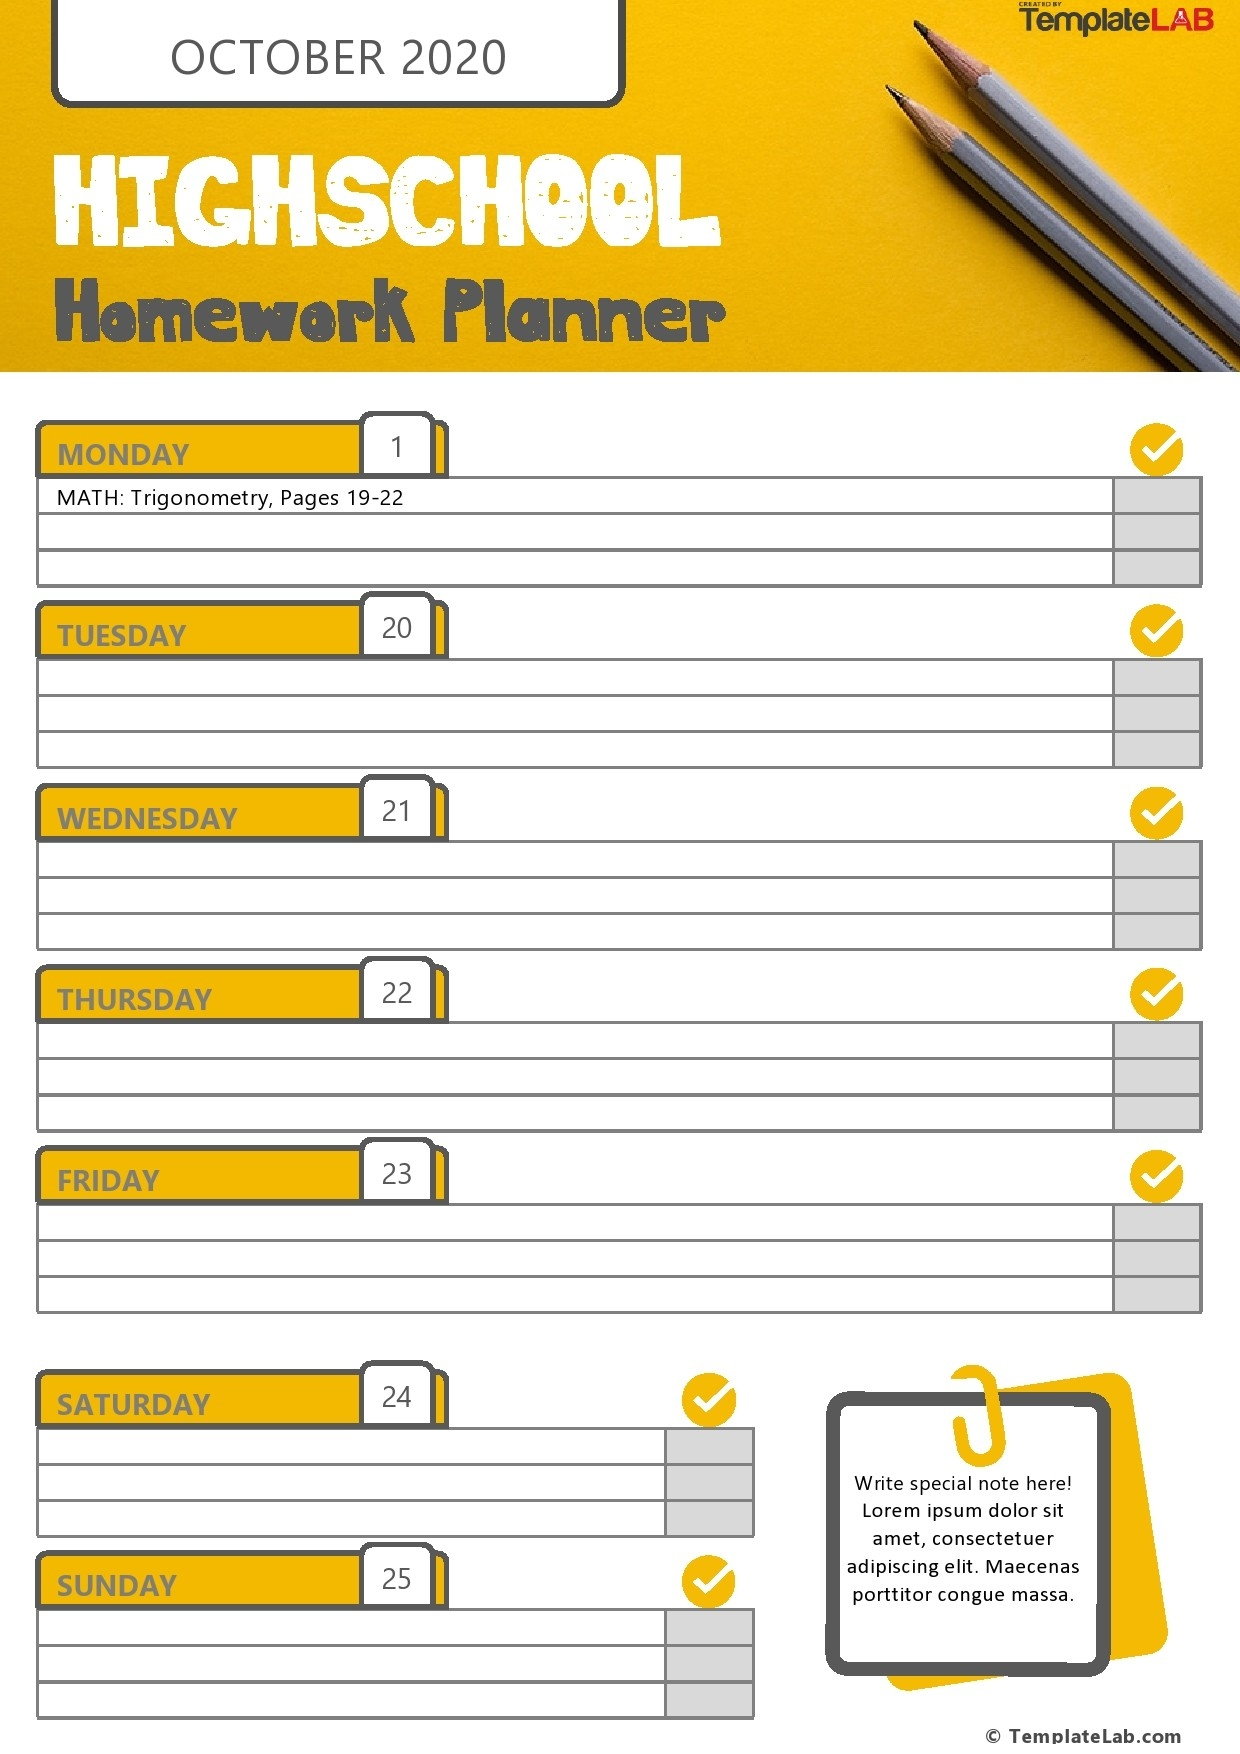 37 Printable Homework Planners (Only The Best) ᐅ Templatelab  Homework Templates Free